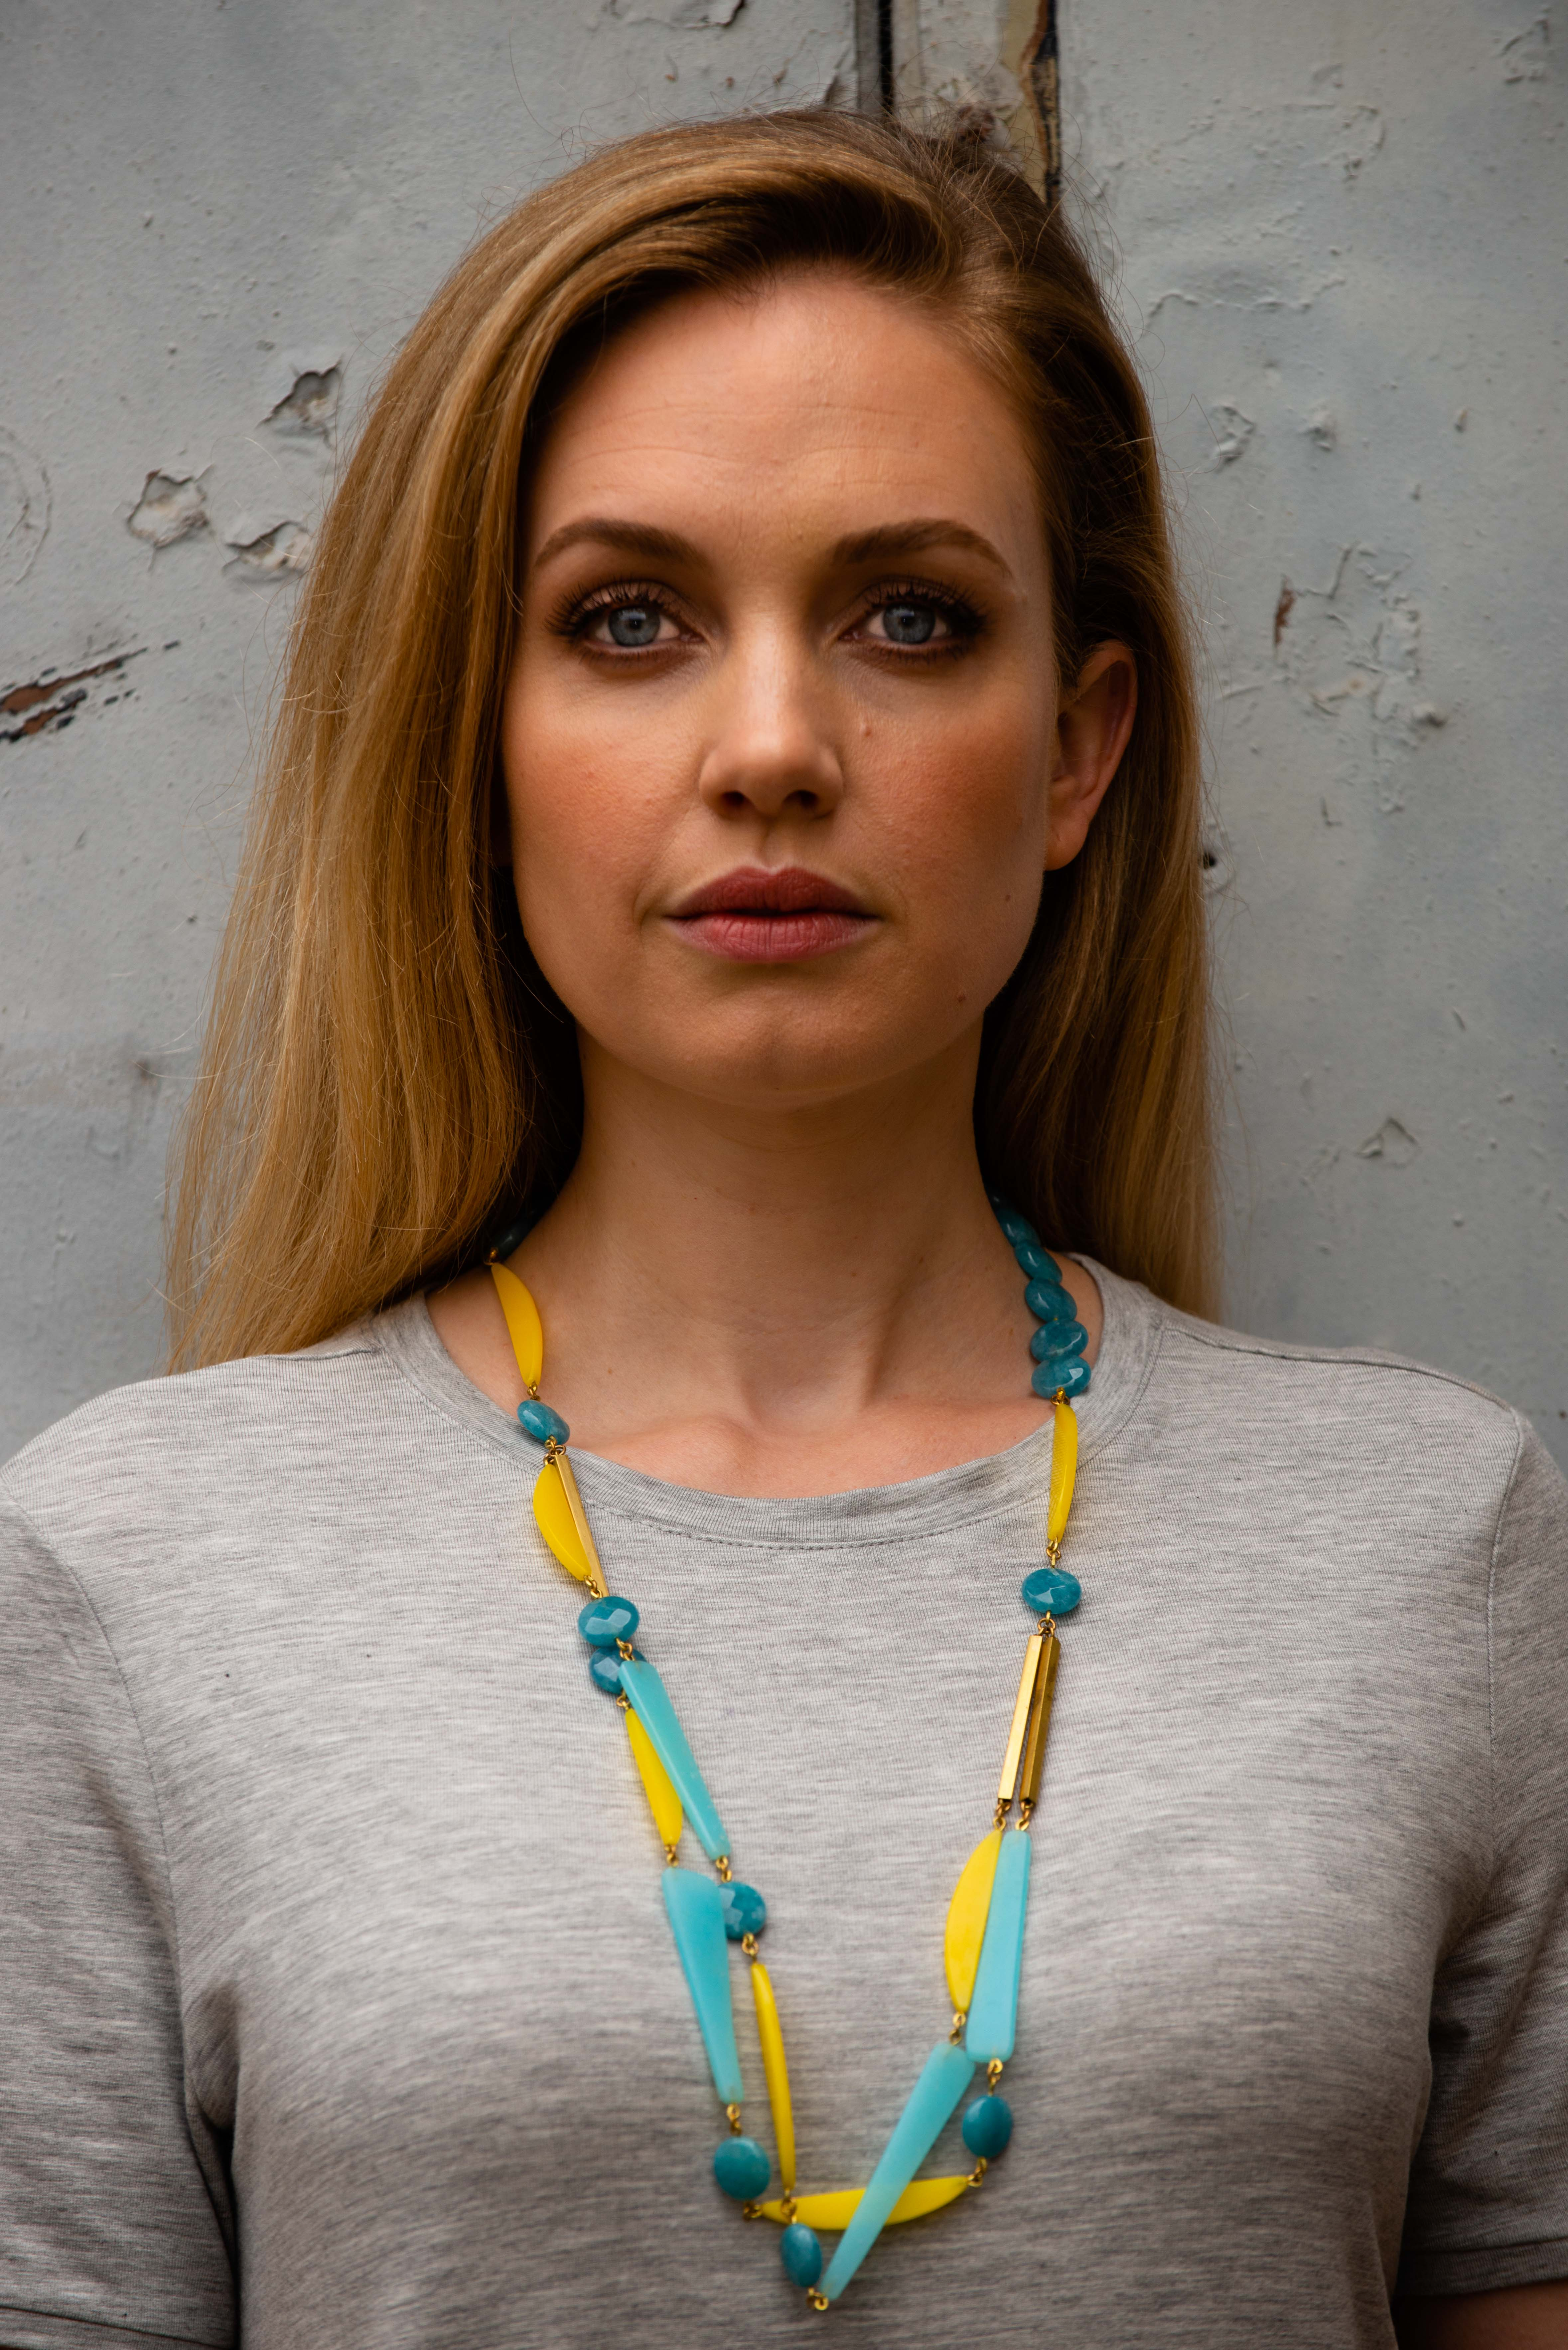 Blue and Yellow Staement Necklace